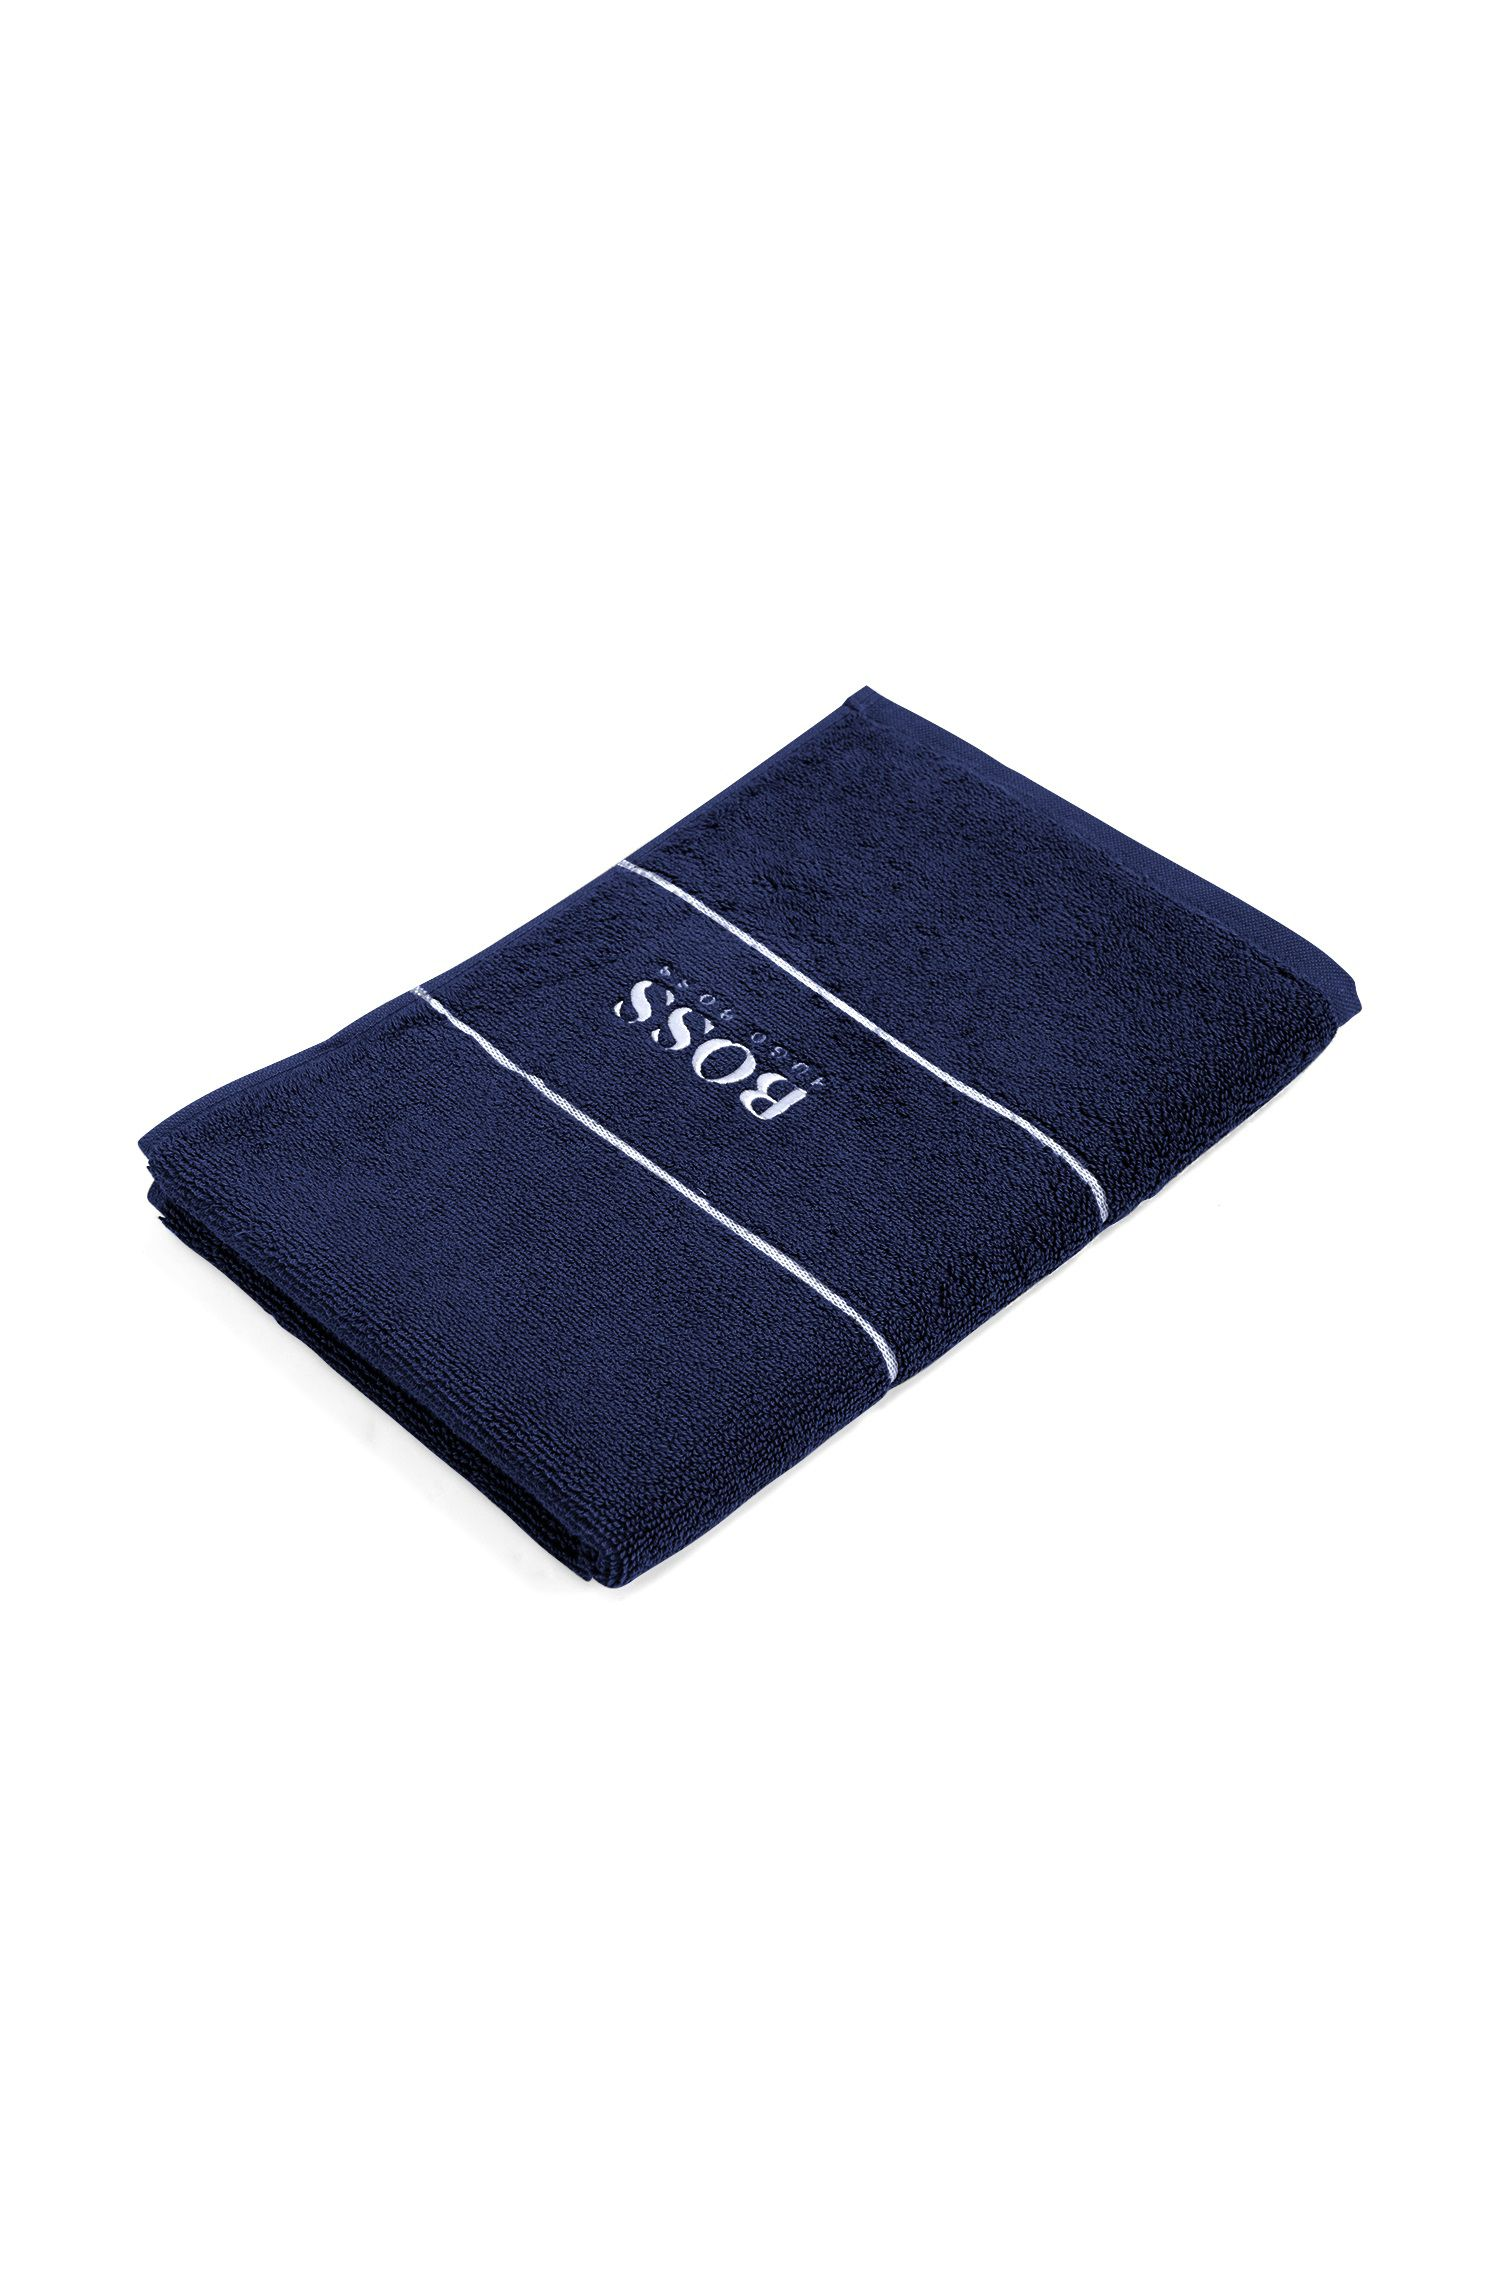 Guest towel 'PLAIN' with woven edging.